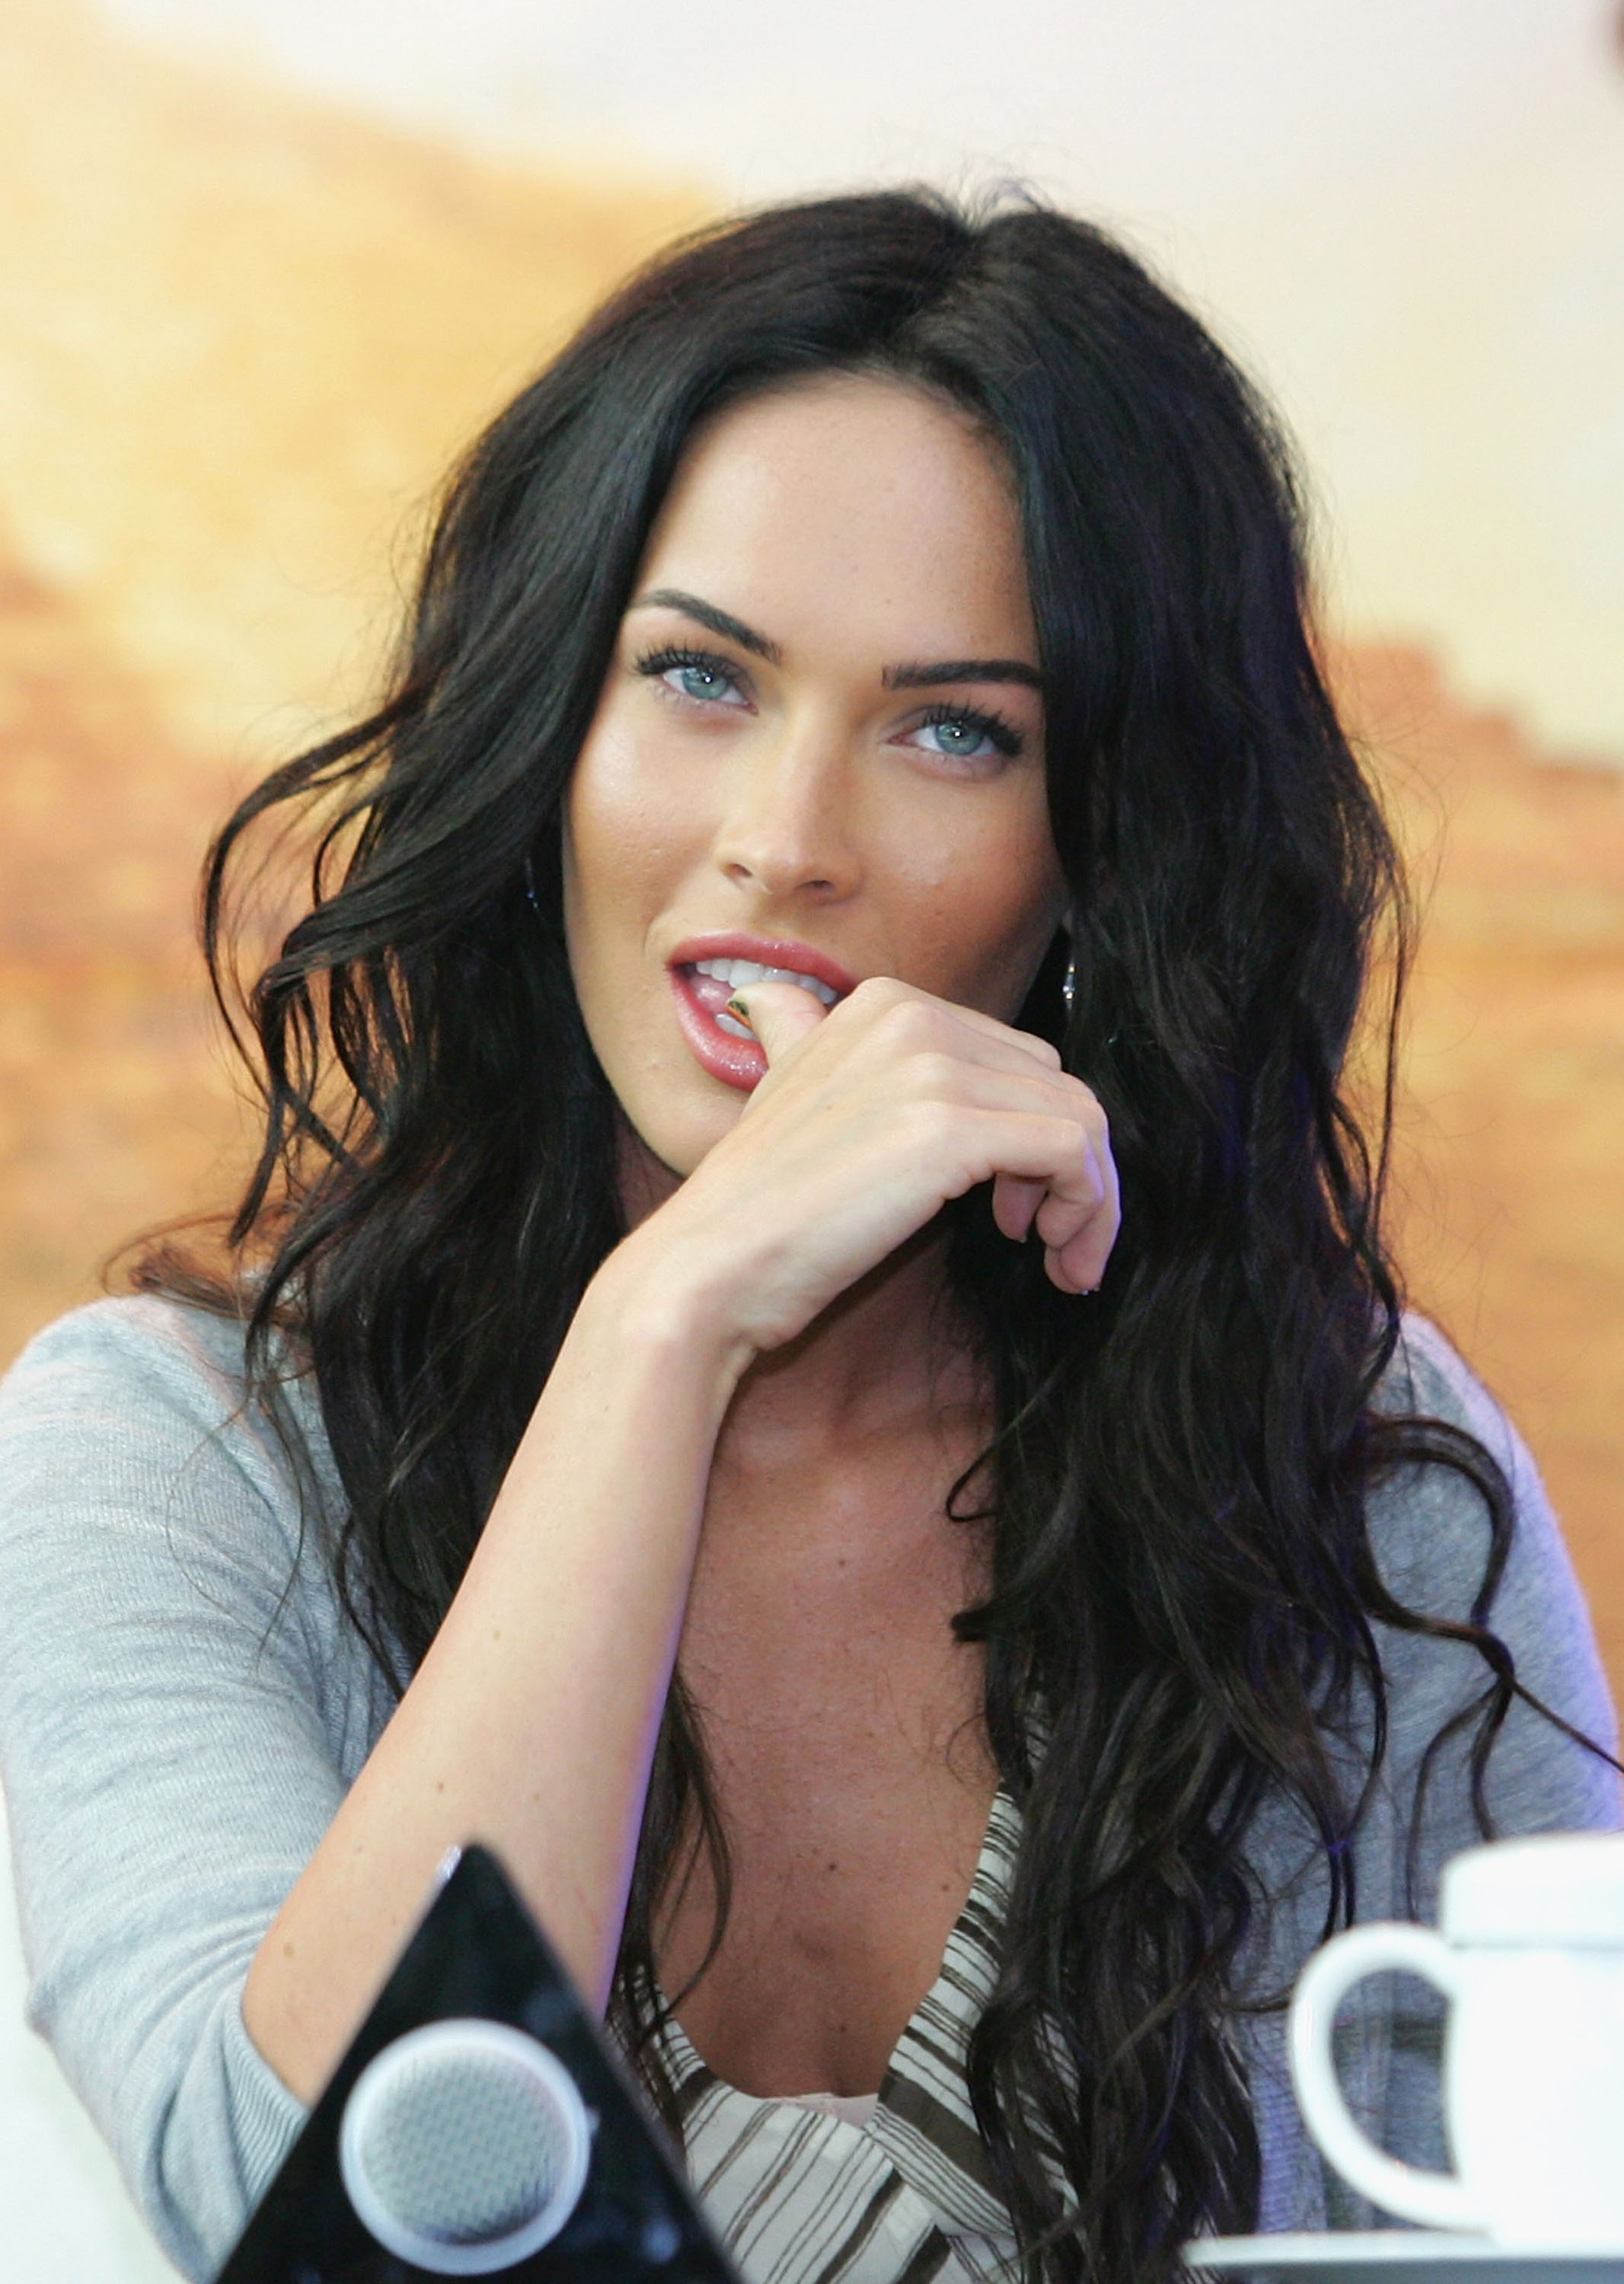 Las escenas de Megan Fox en Transformers